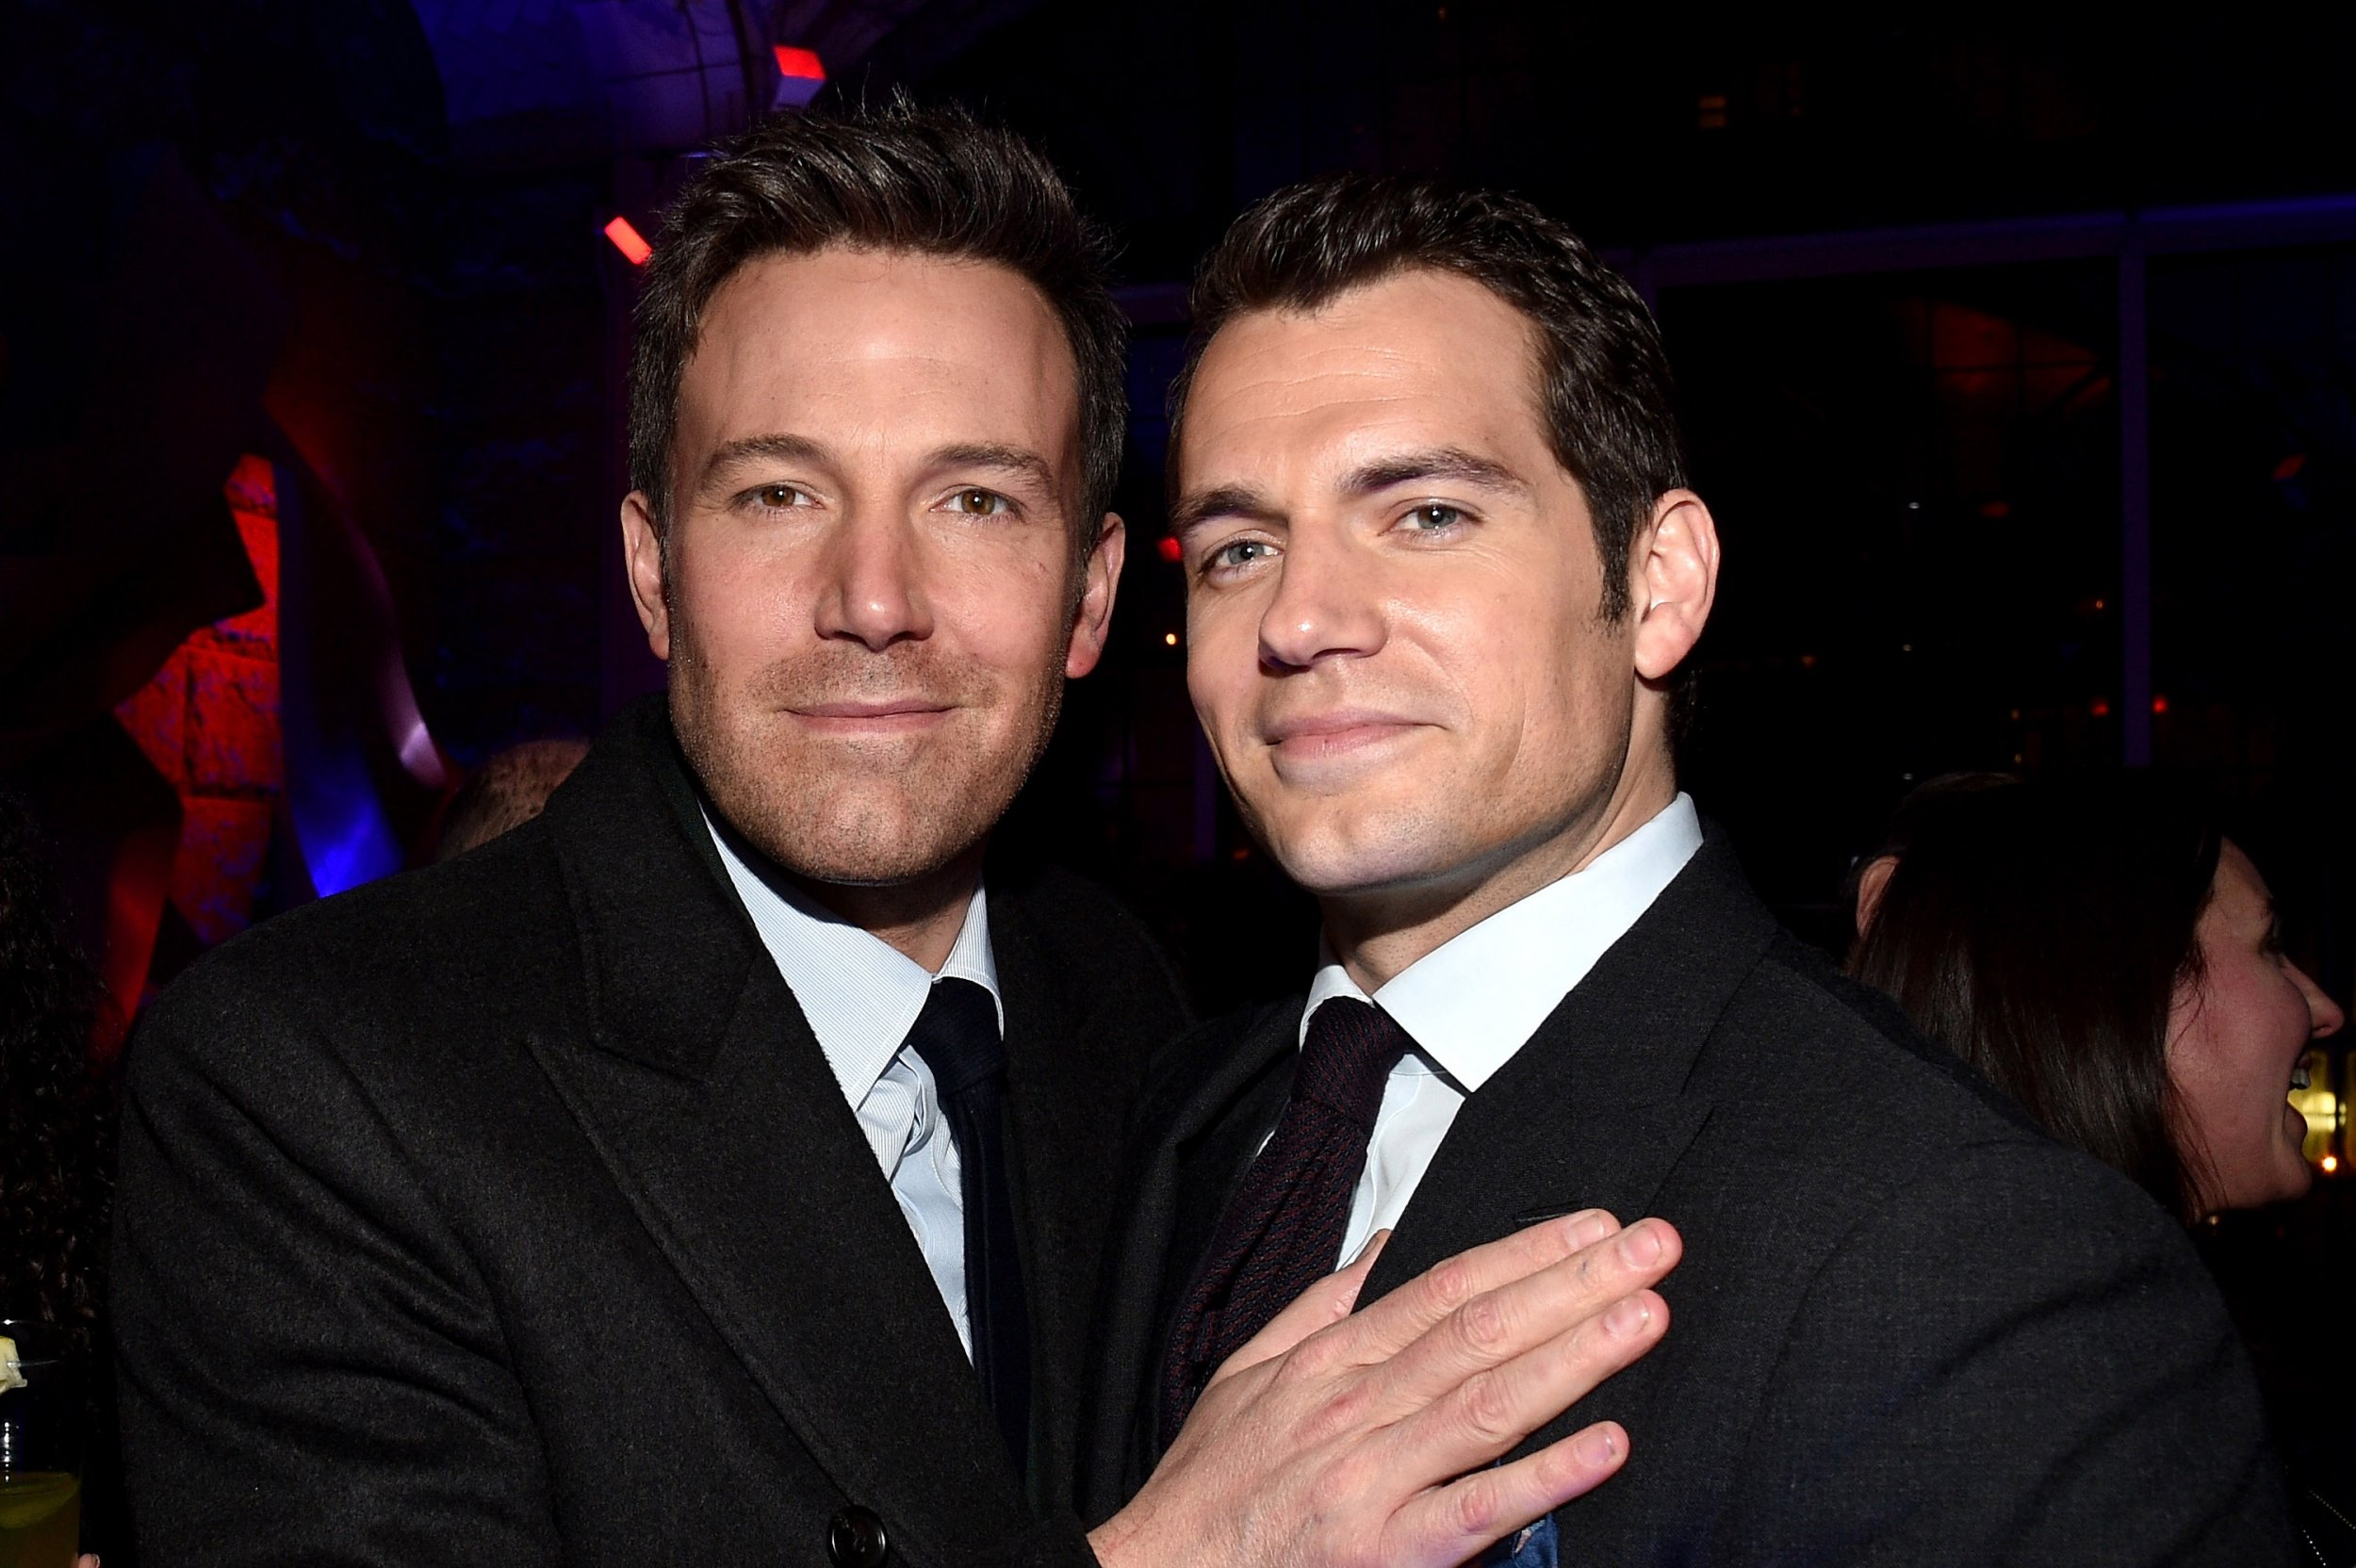 Batman v Superman stars Ben Affleck and Henry Cavill